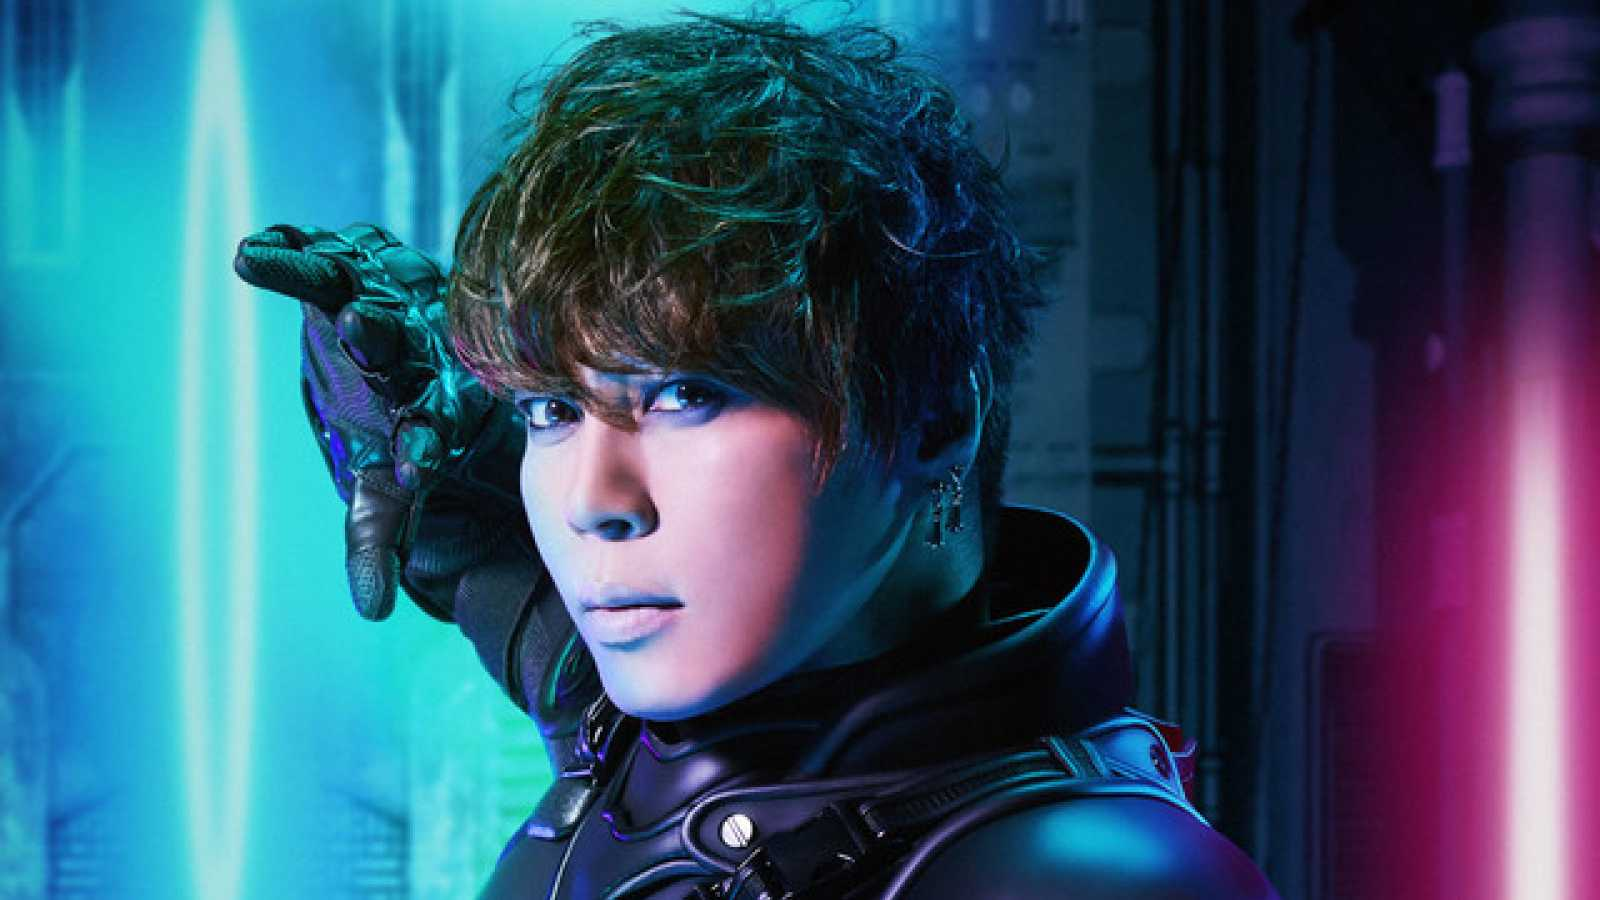 Takanori Nishikawa © EPIC Records Japan